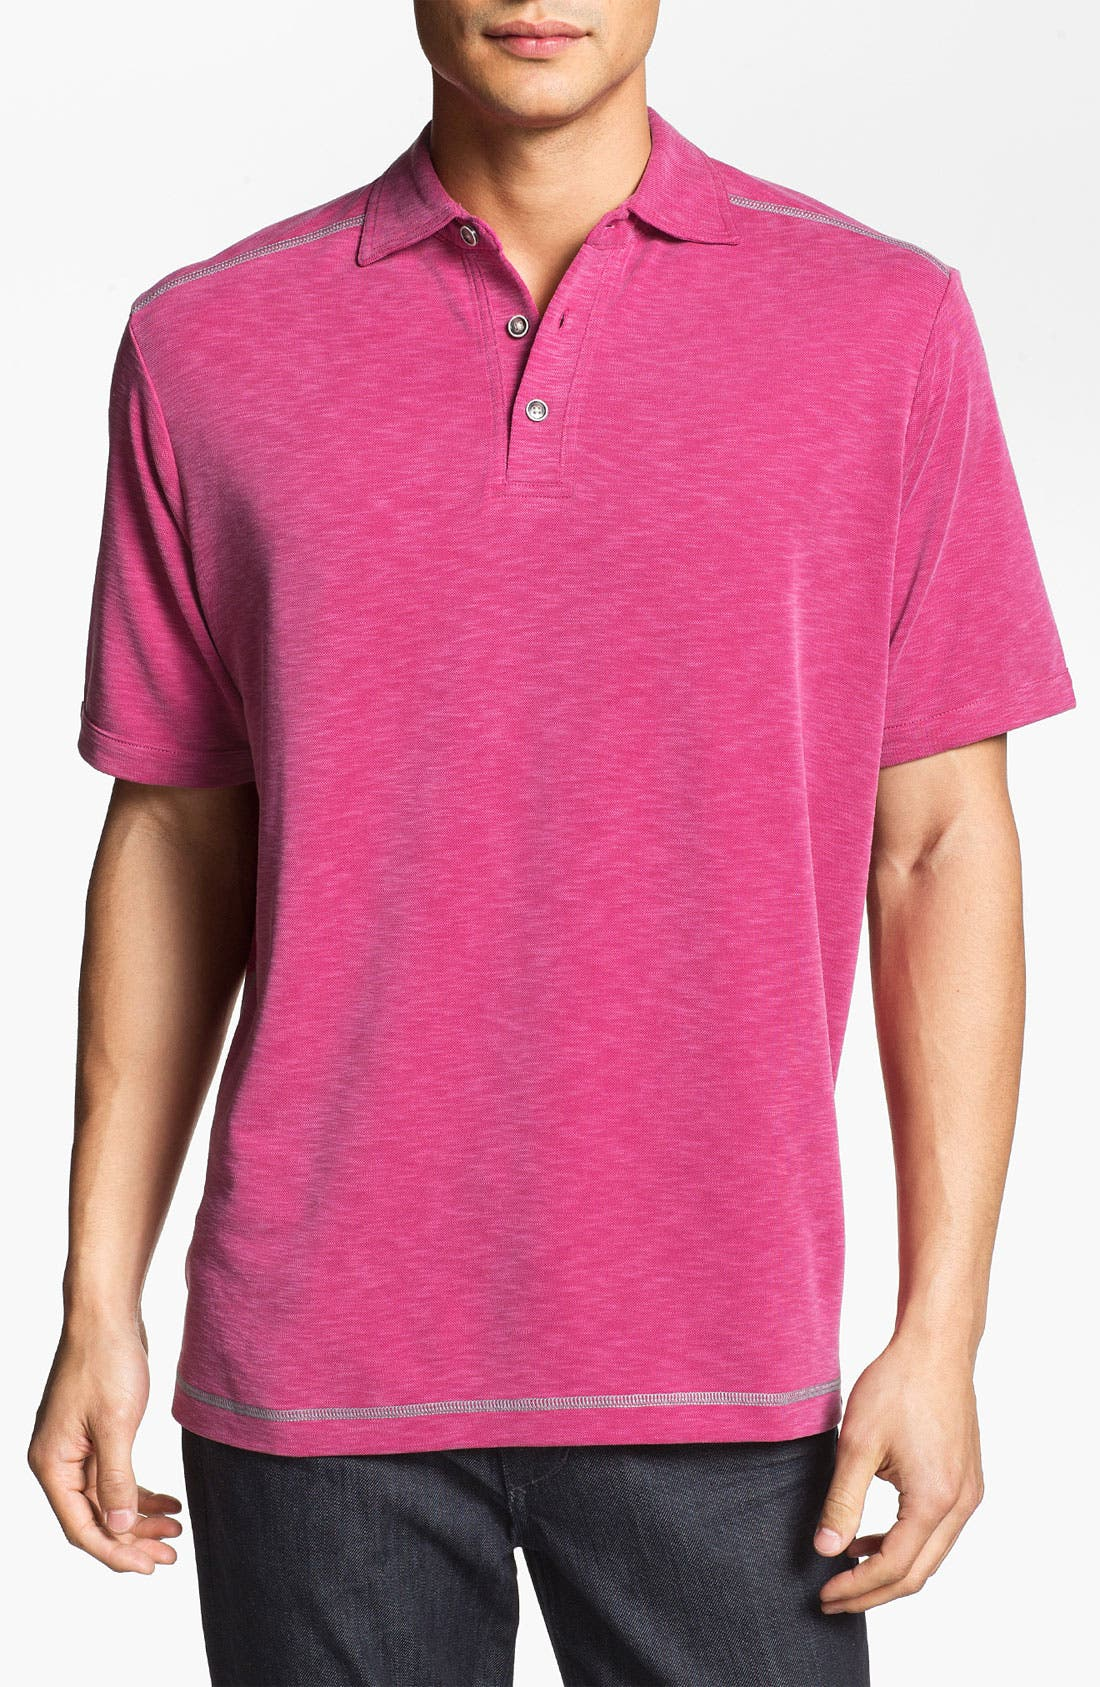 Alternate Image 1 Selected - Tommy Bahama 'Paradise Blend' Polo